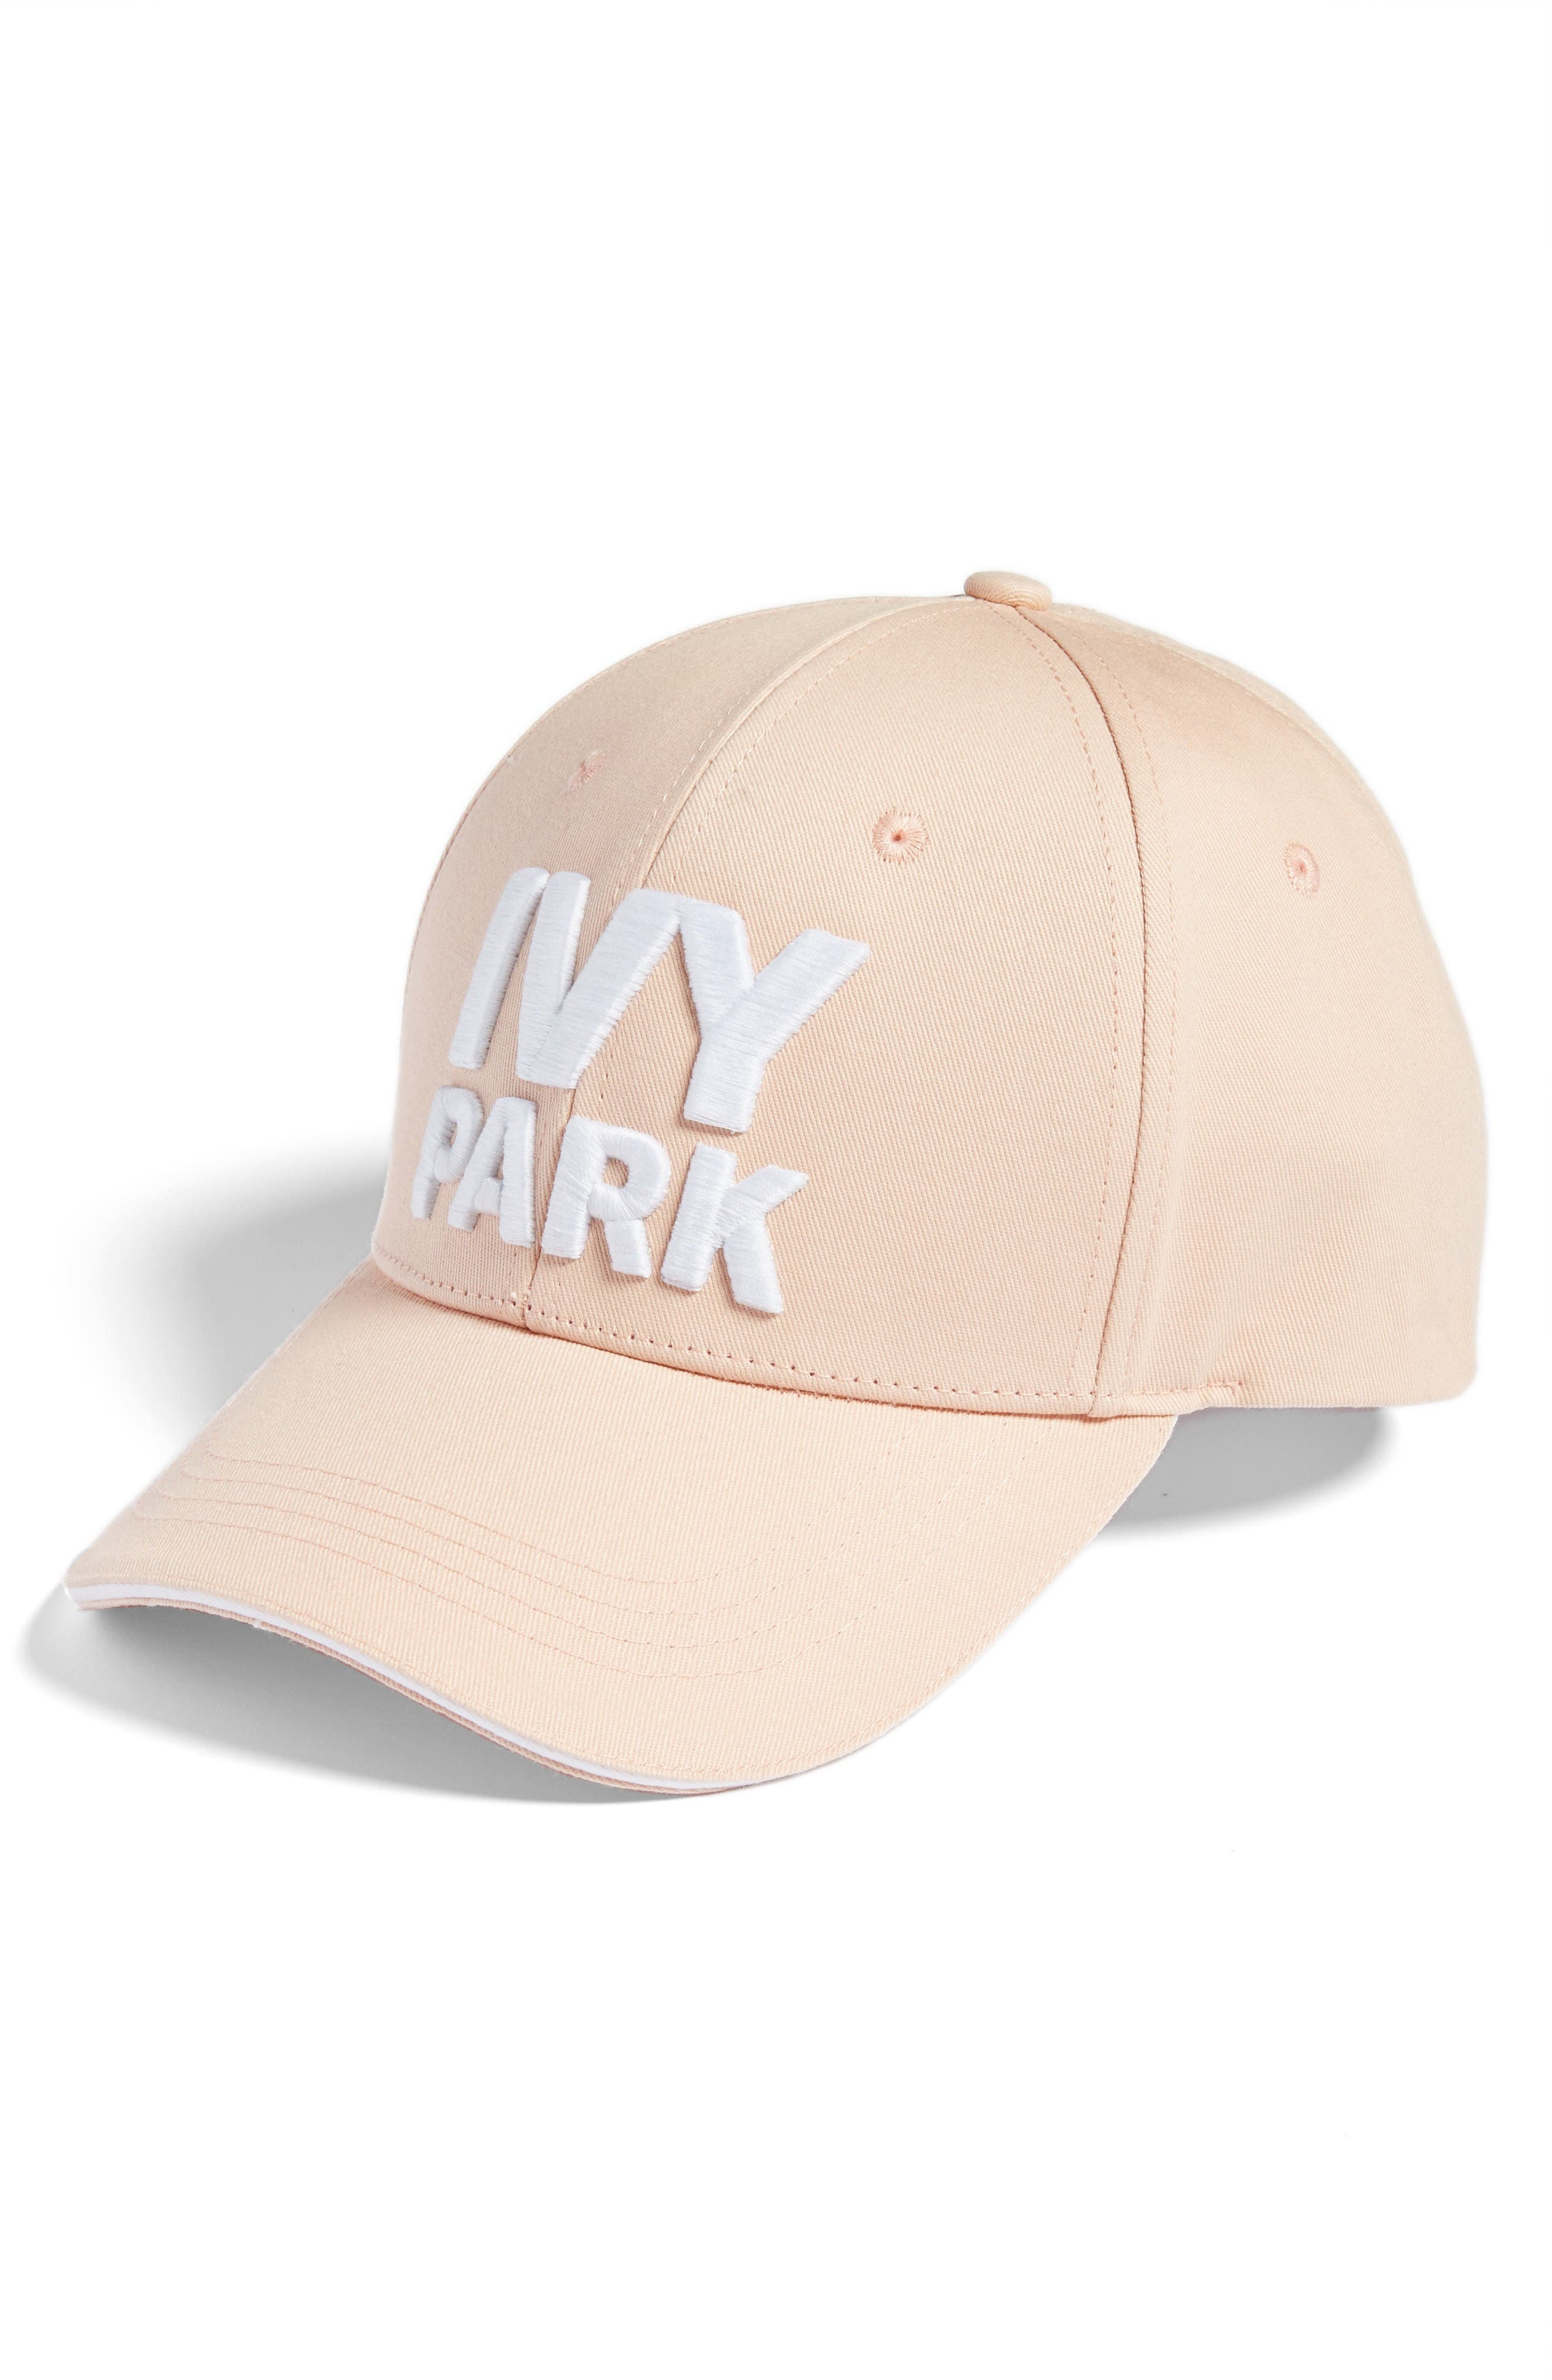 Alternate Image 1 Selected - IVY PARK® Logo Baseball Cap